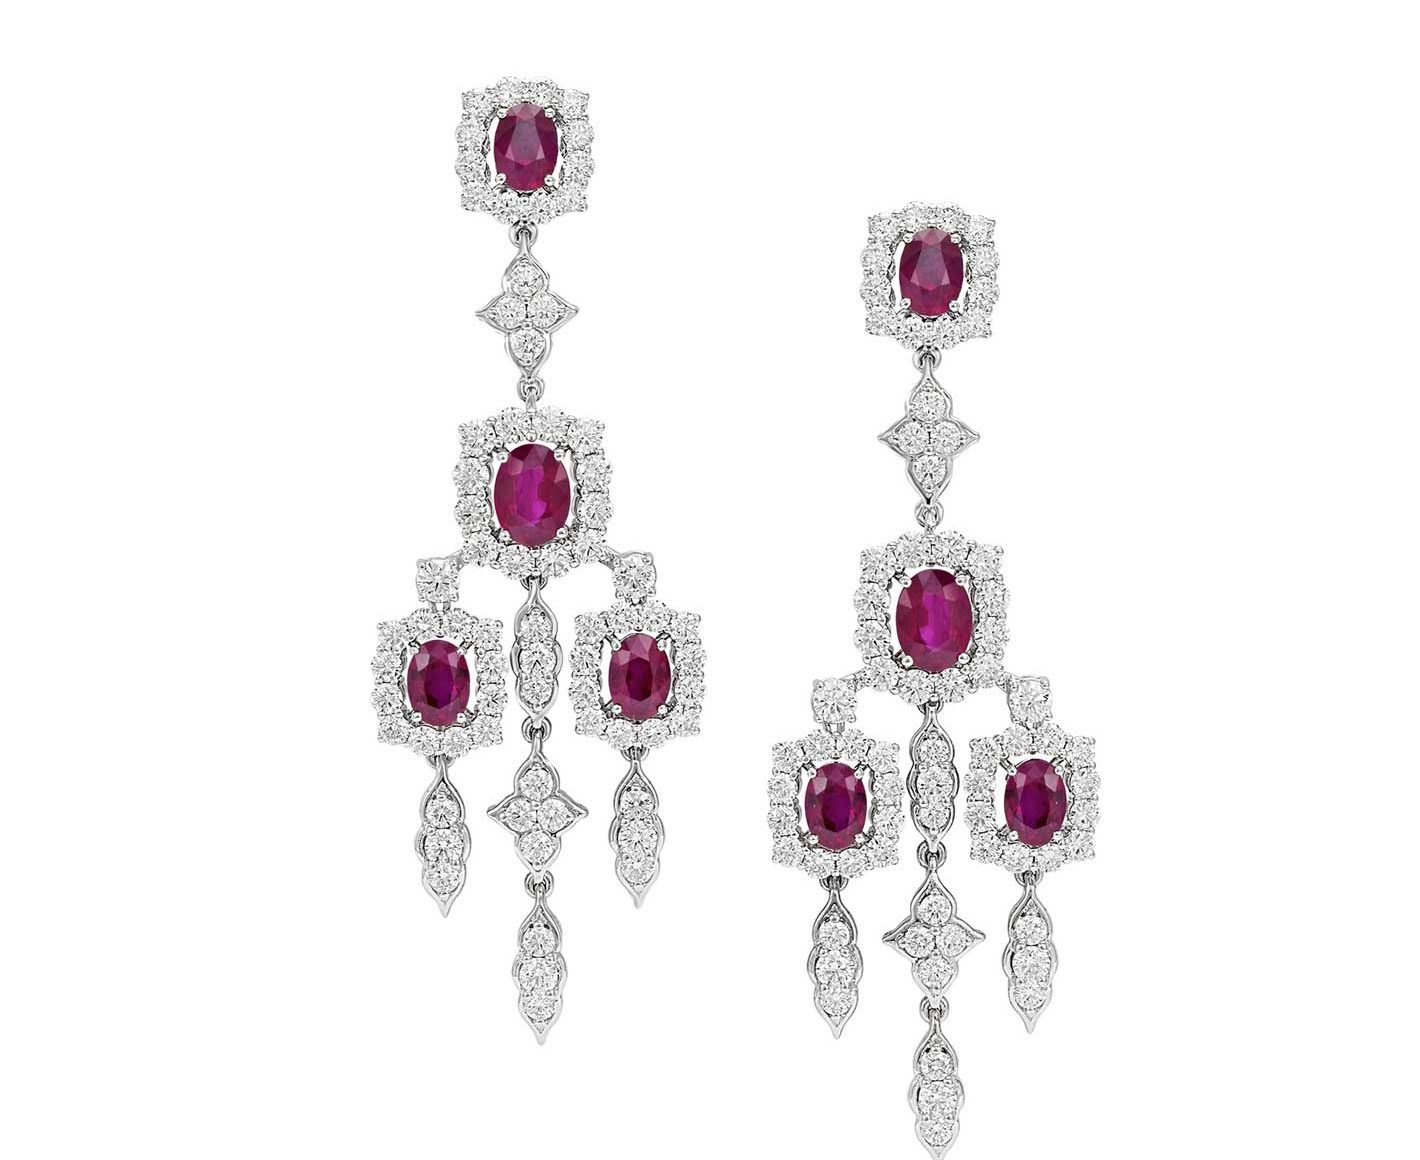 Earings with rubies and diamonds